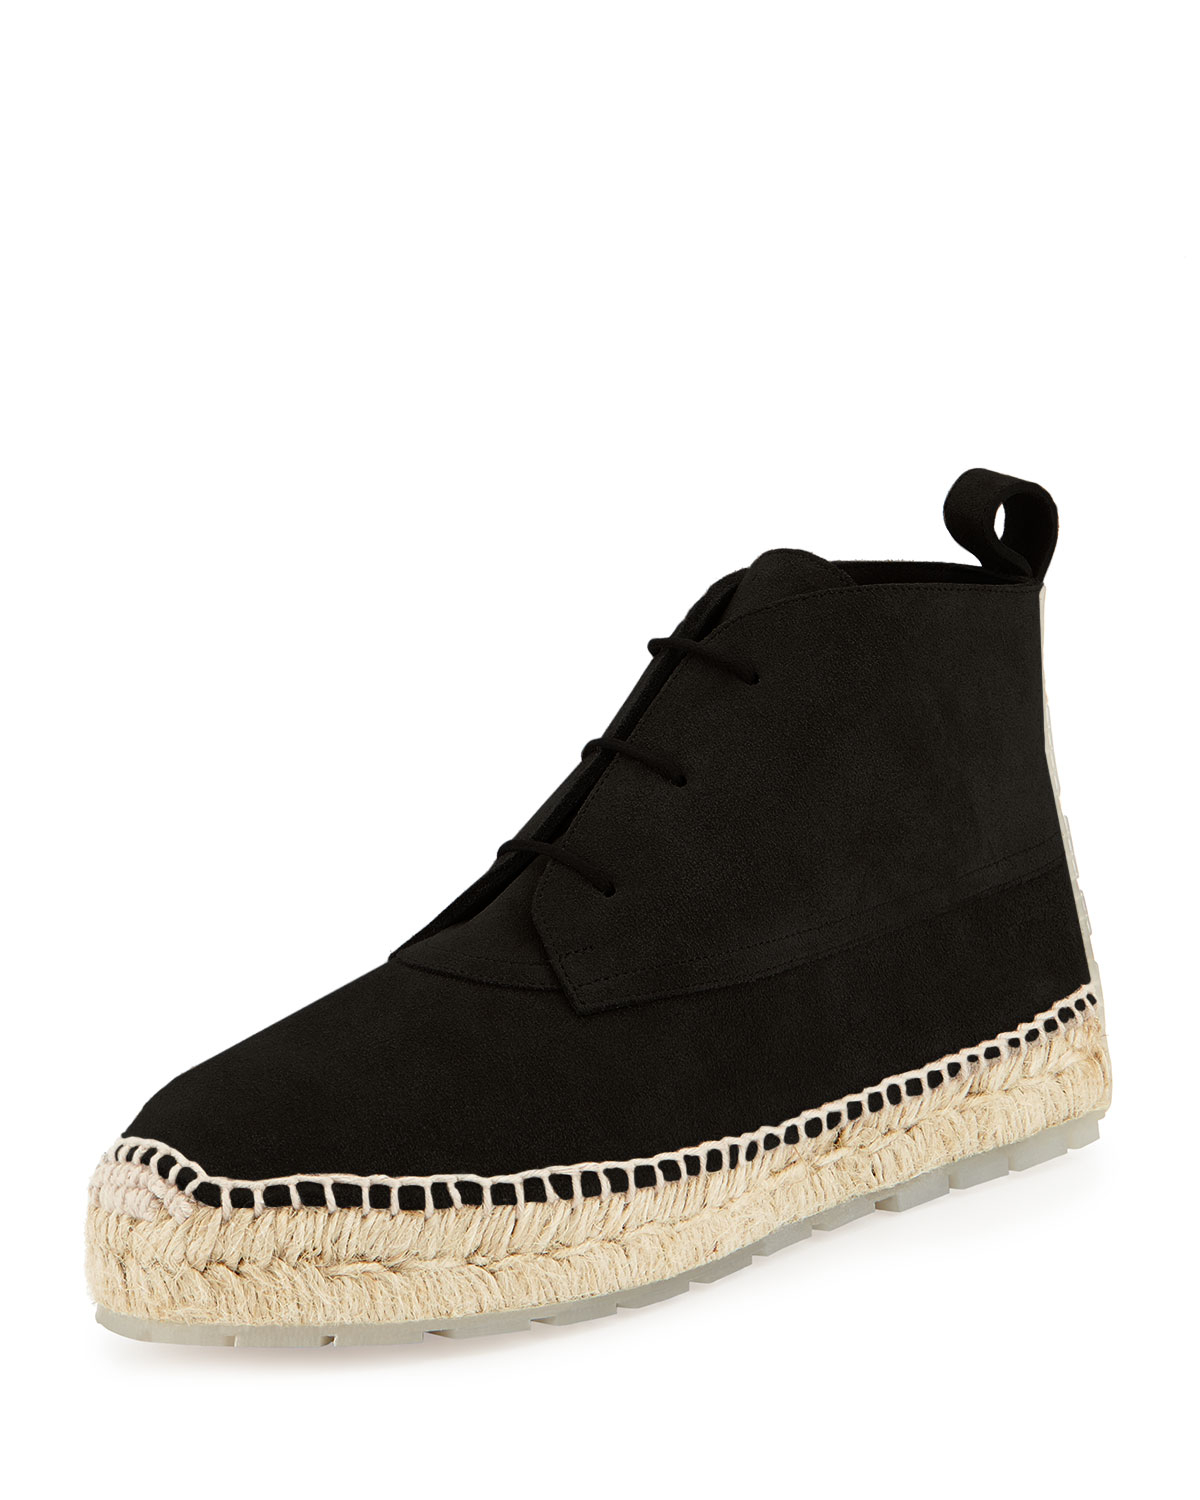 Balenciaga Lace-Up Suede Espadrille Boots in Black | Lyst